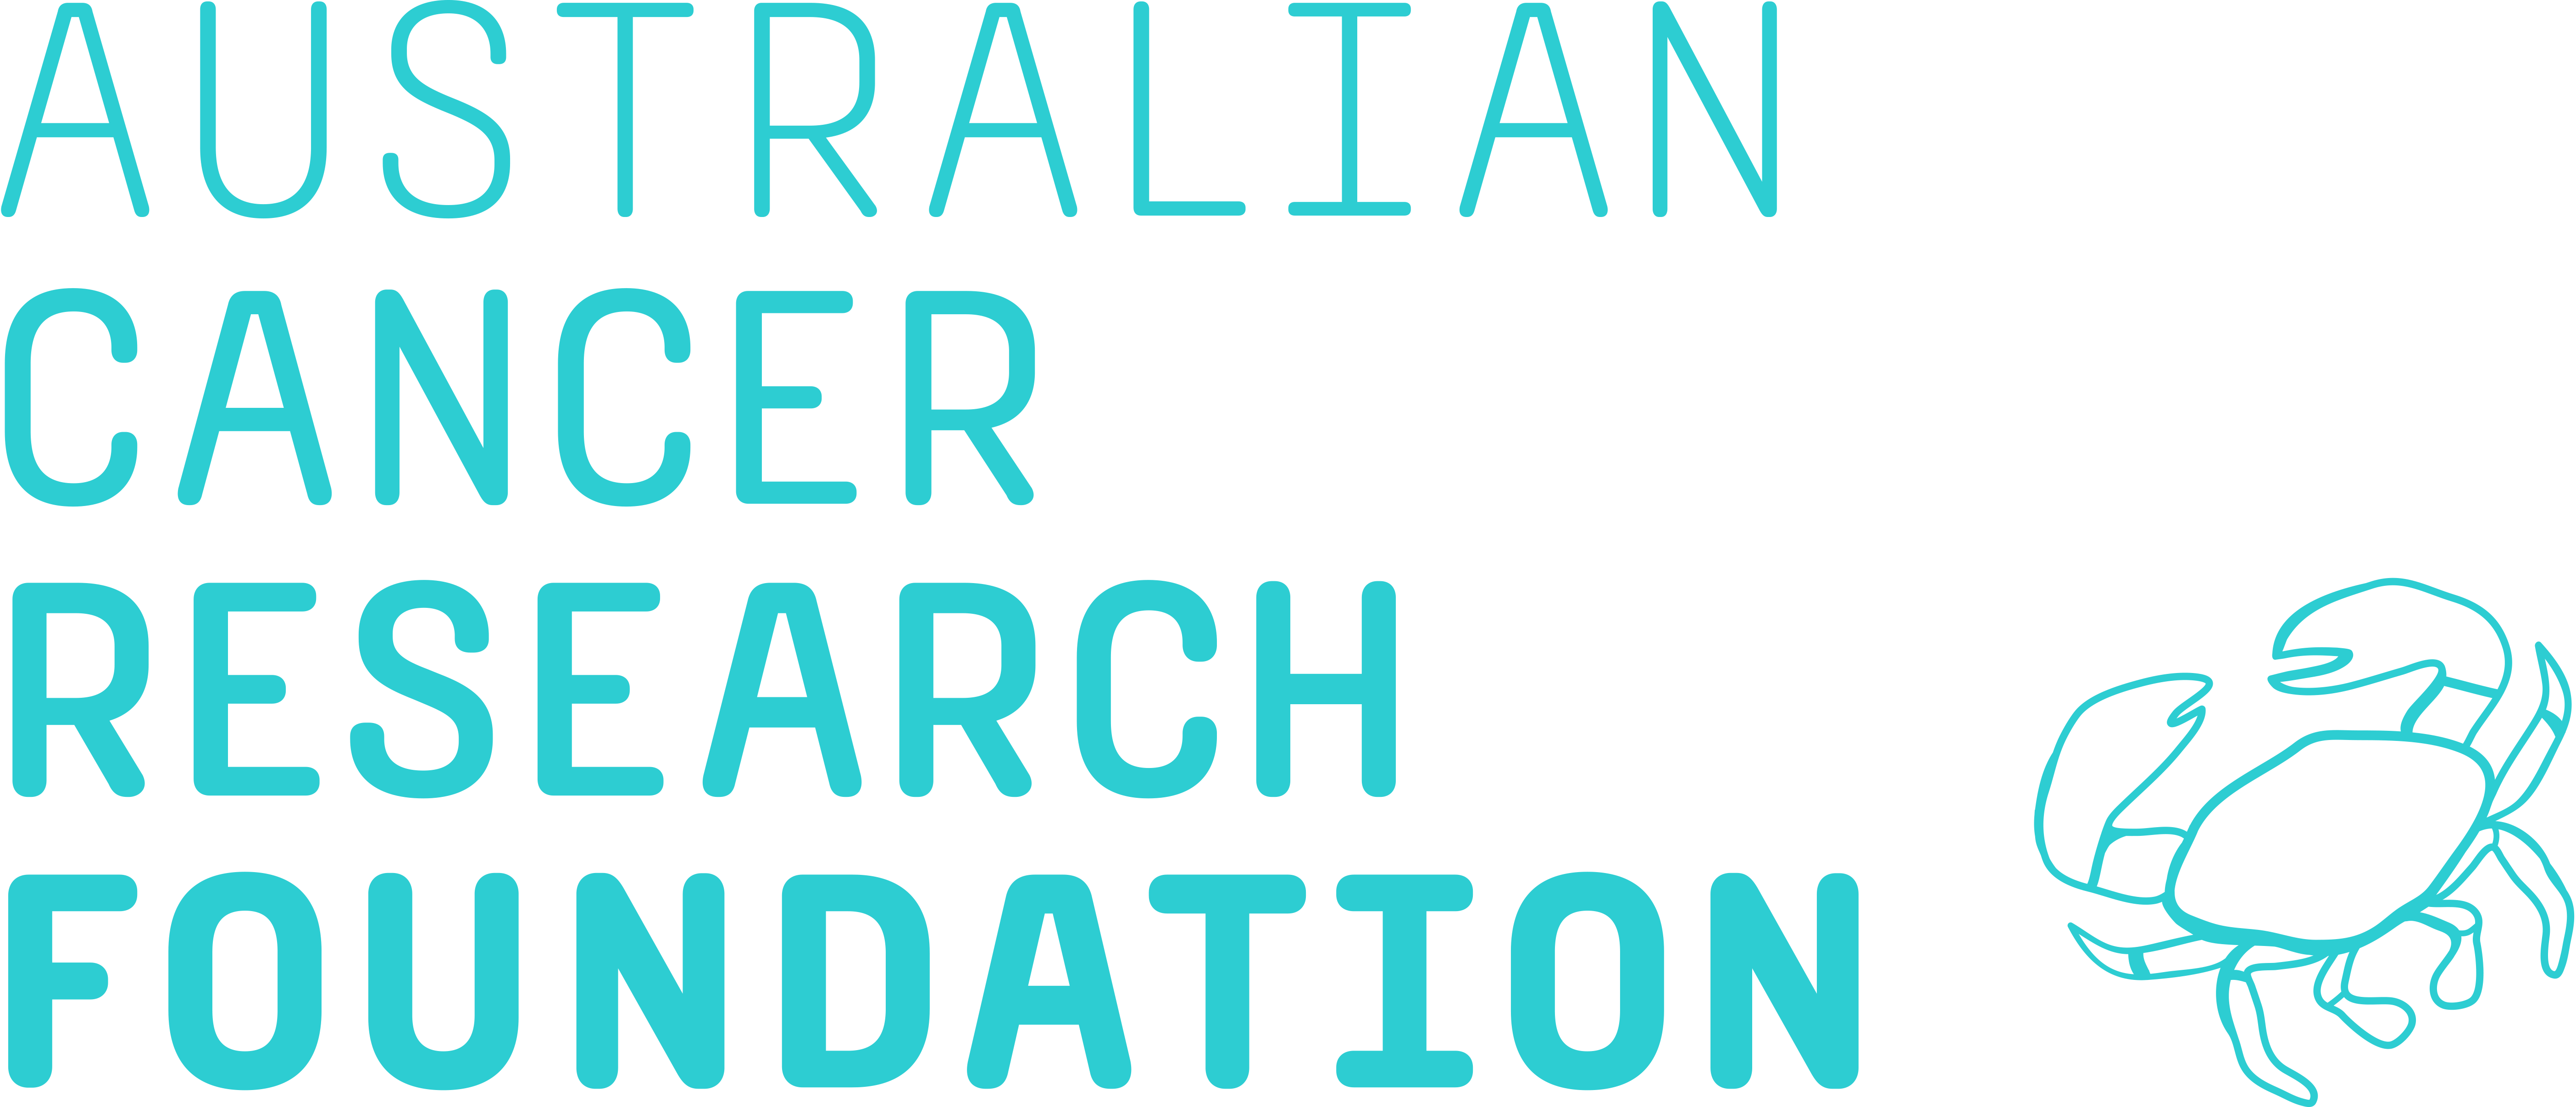 Australian Cancer Research Foundation.